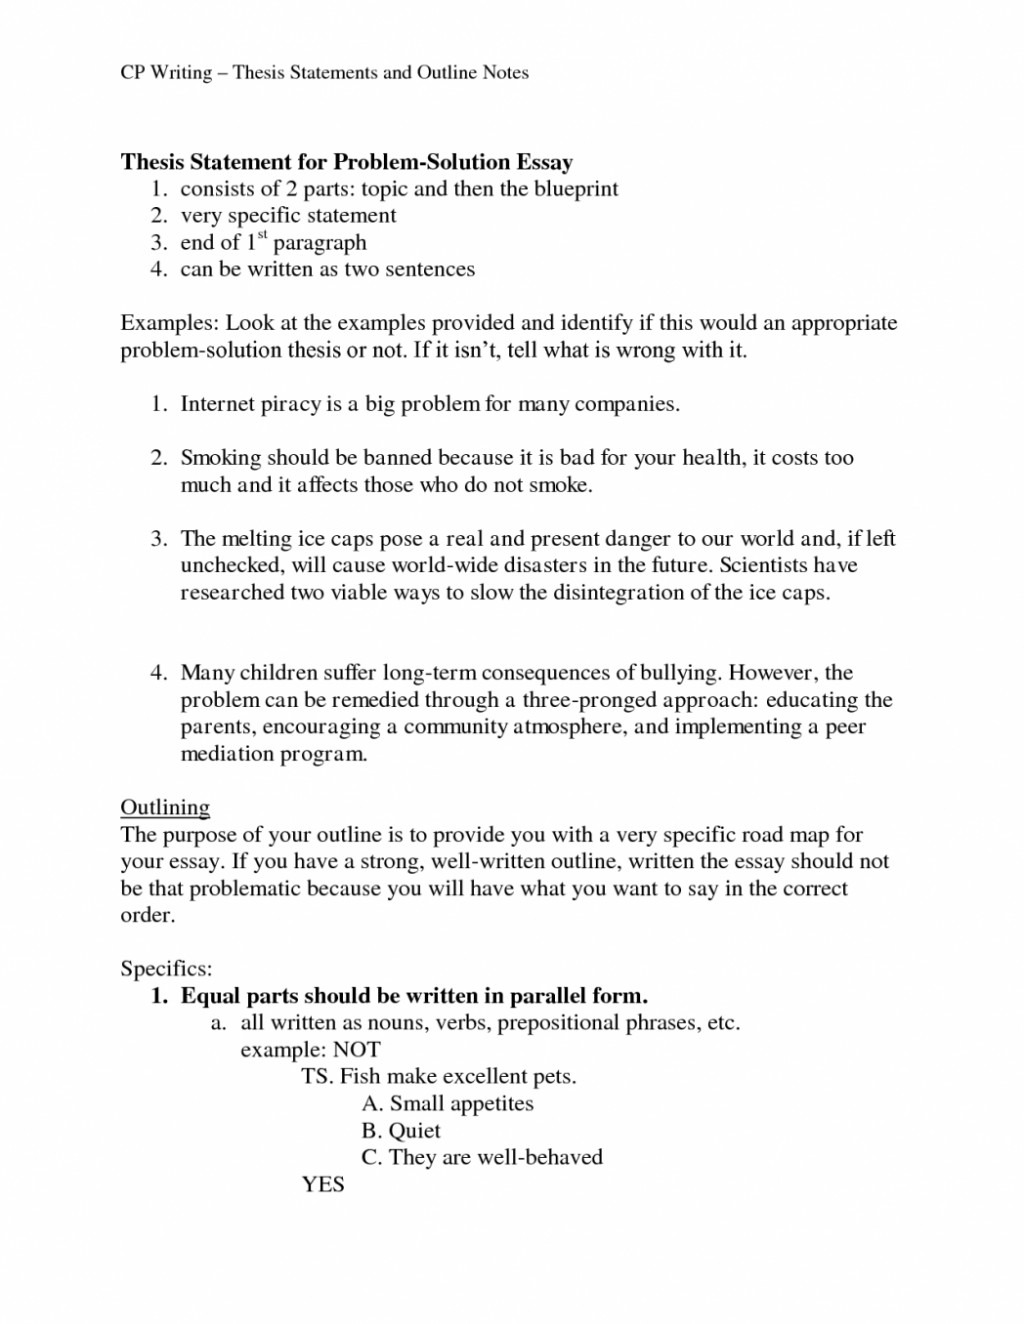 025 Comparative Essay Outline Example Of With Thesis Statement Personal How To Write Poetry Introduction Problem Format Template Mm6 Contrast Vce Comparison Singular Writing Pdf Large